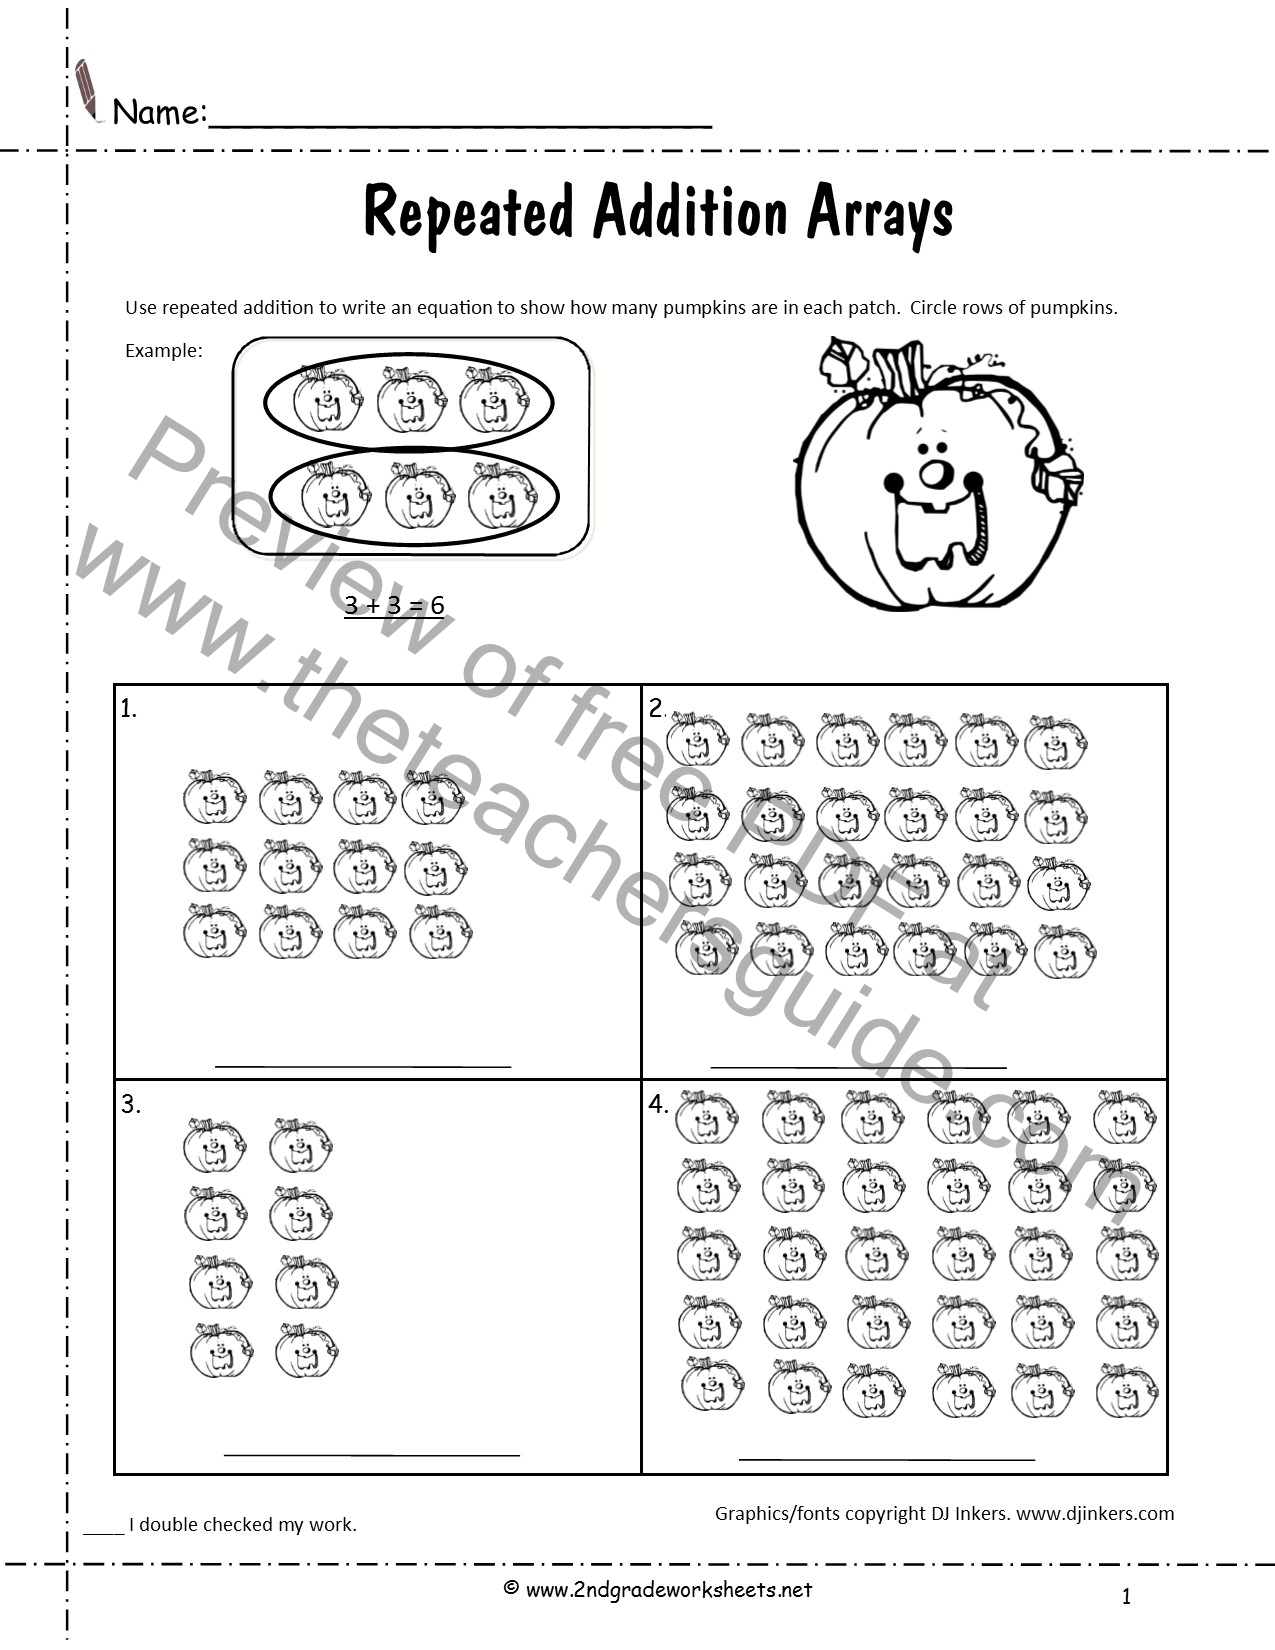 Halloween Printouts from The Teachers Guide – Repeated Addition Worksheets Ks1